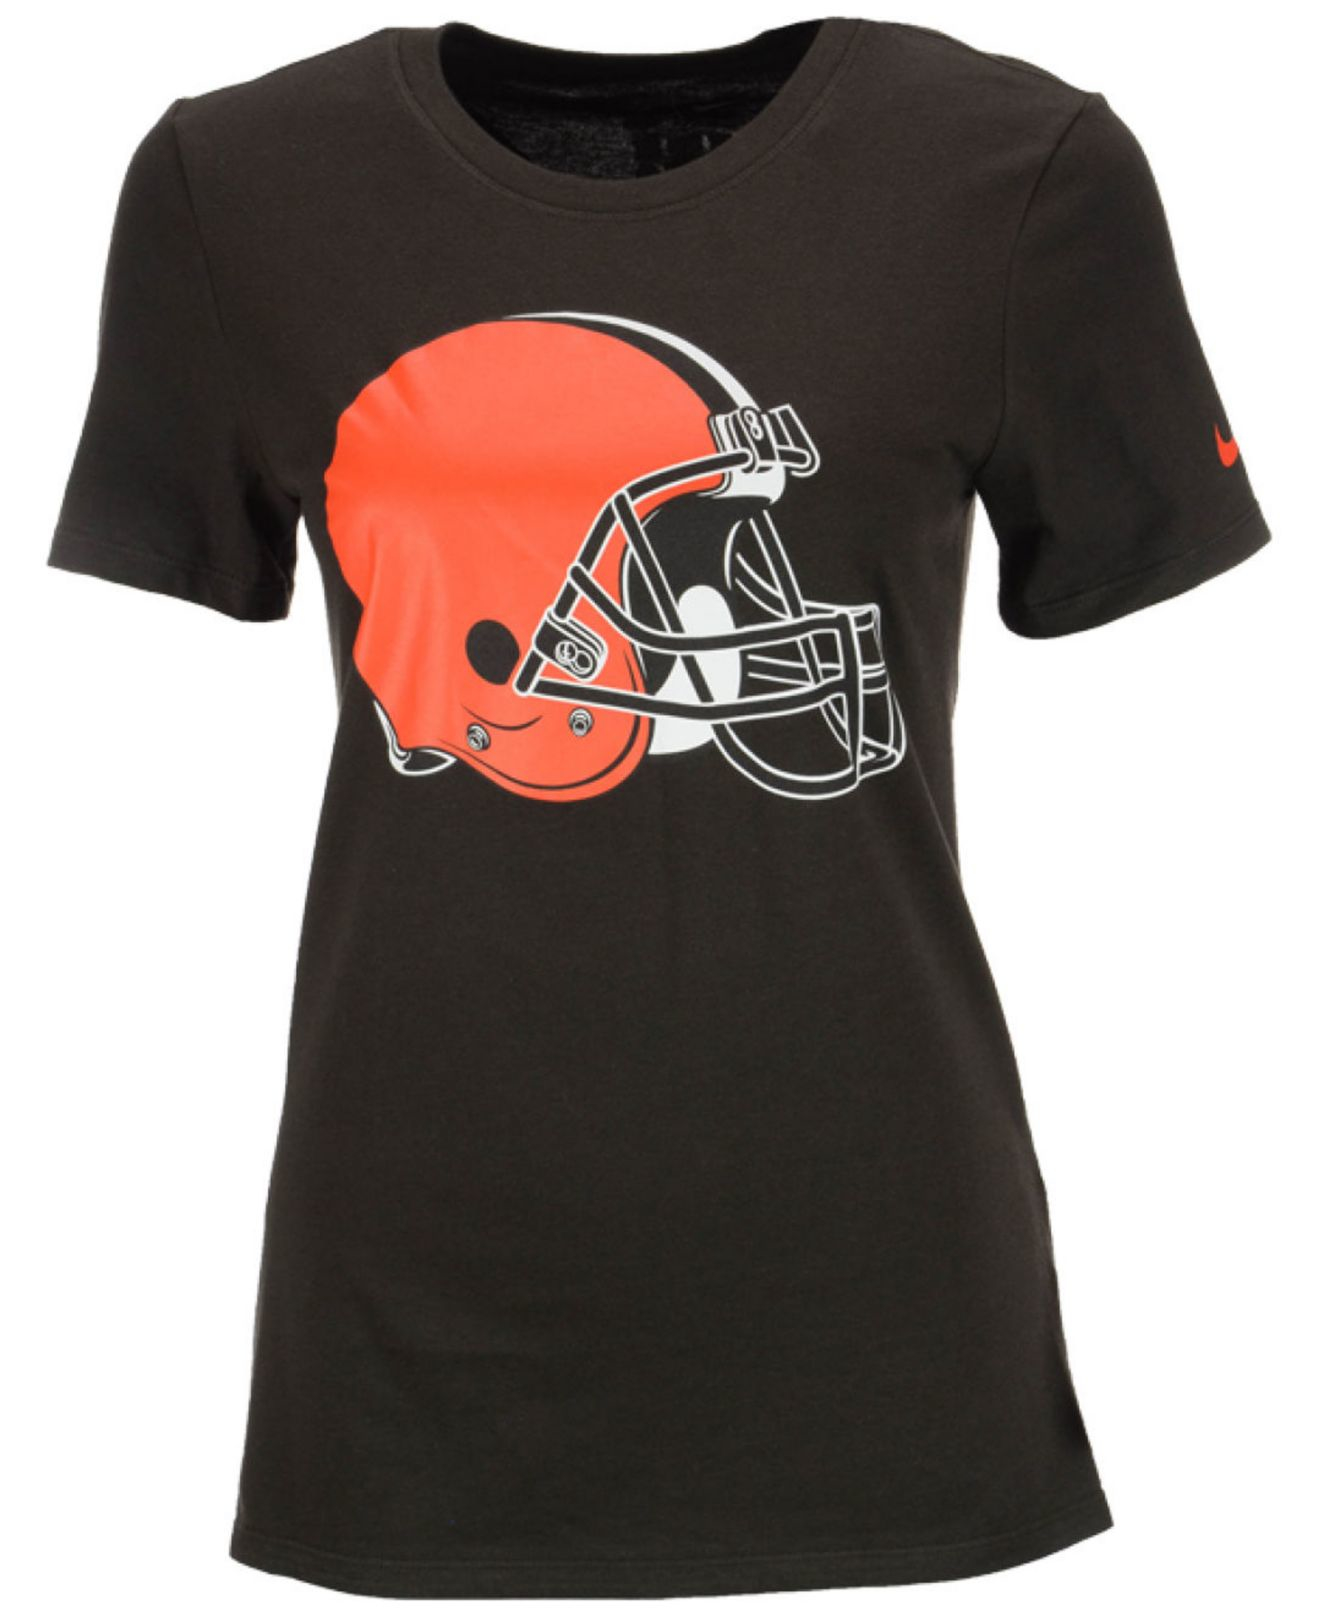 Nike women 39 s cleveland browns logo t shirt in brown lyst for Cleveland t shirt printing